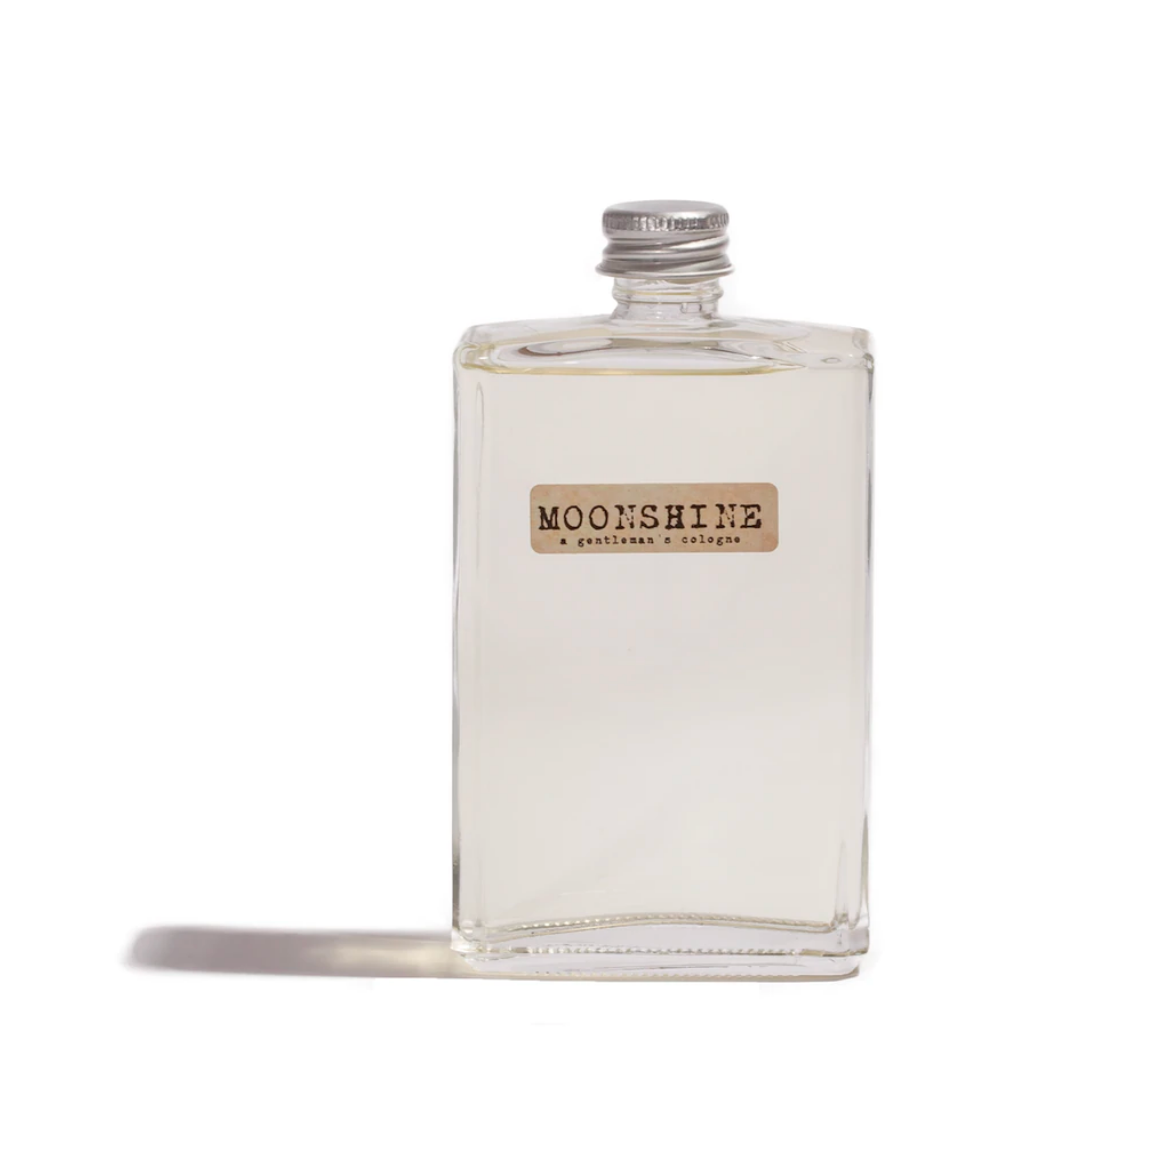 Moonshine Cologne